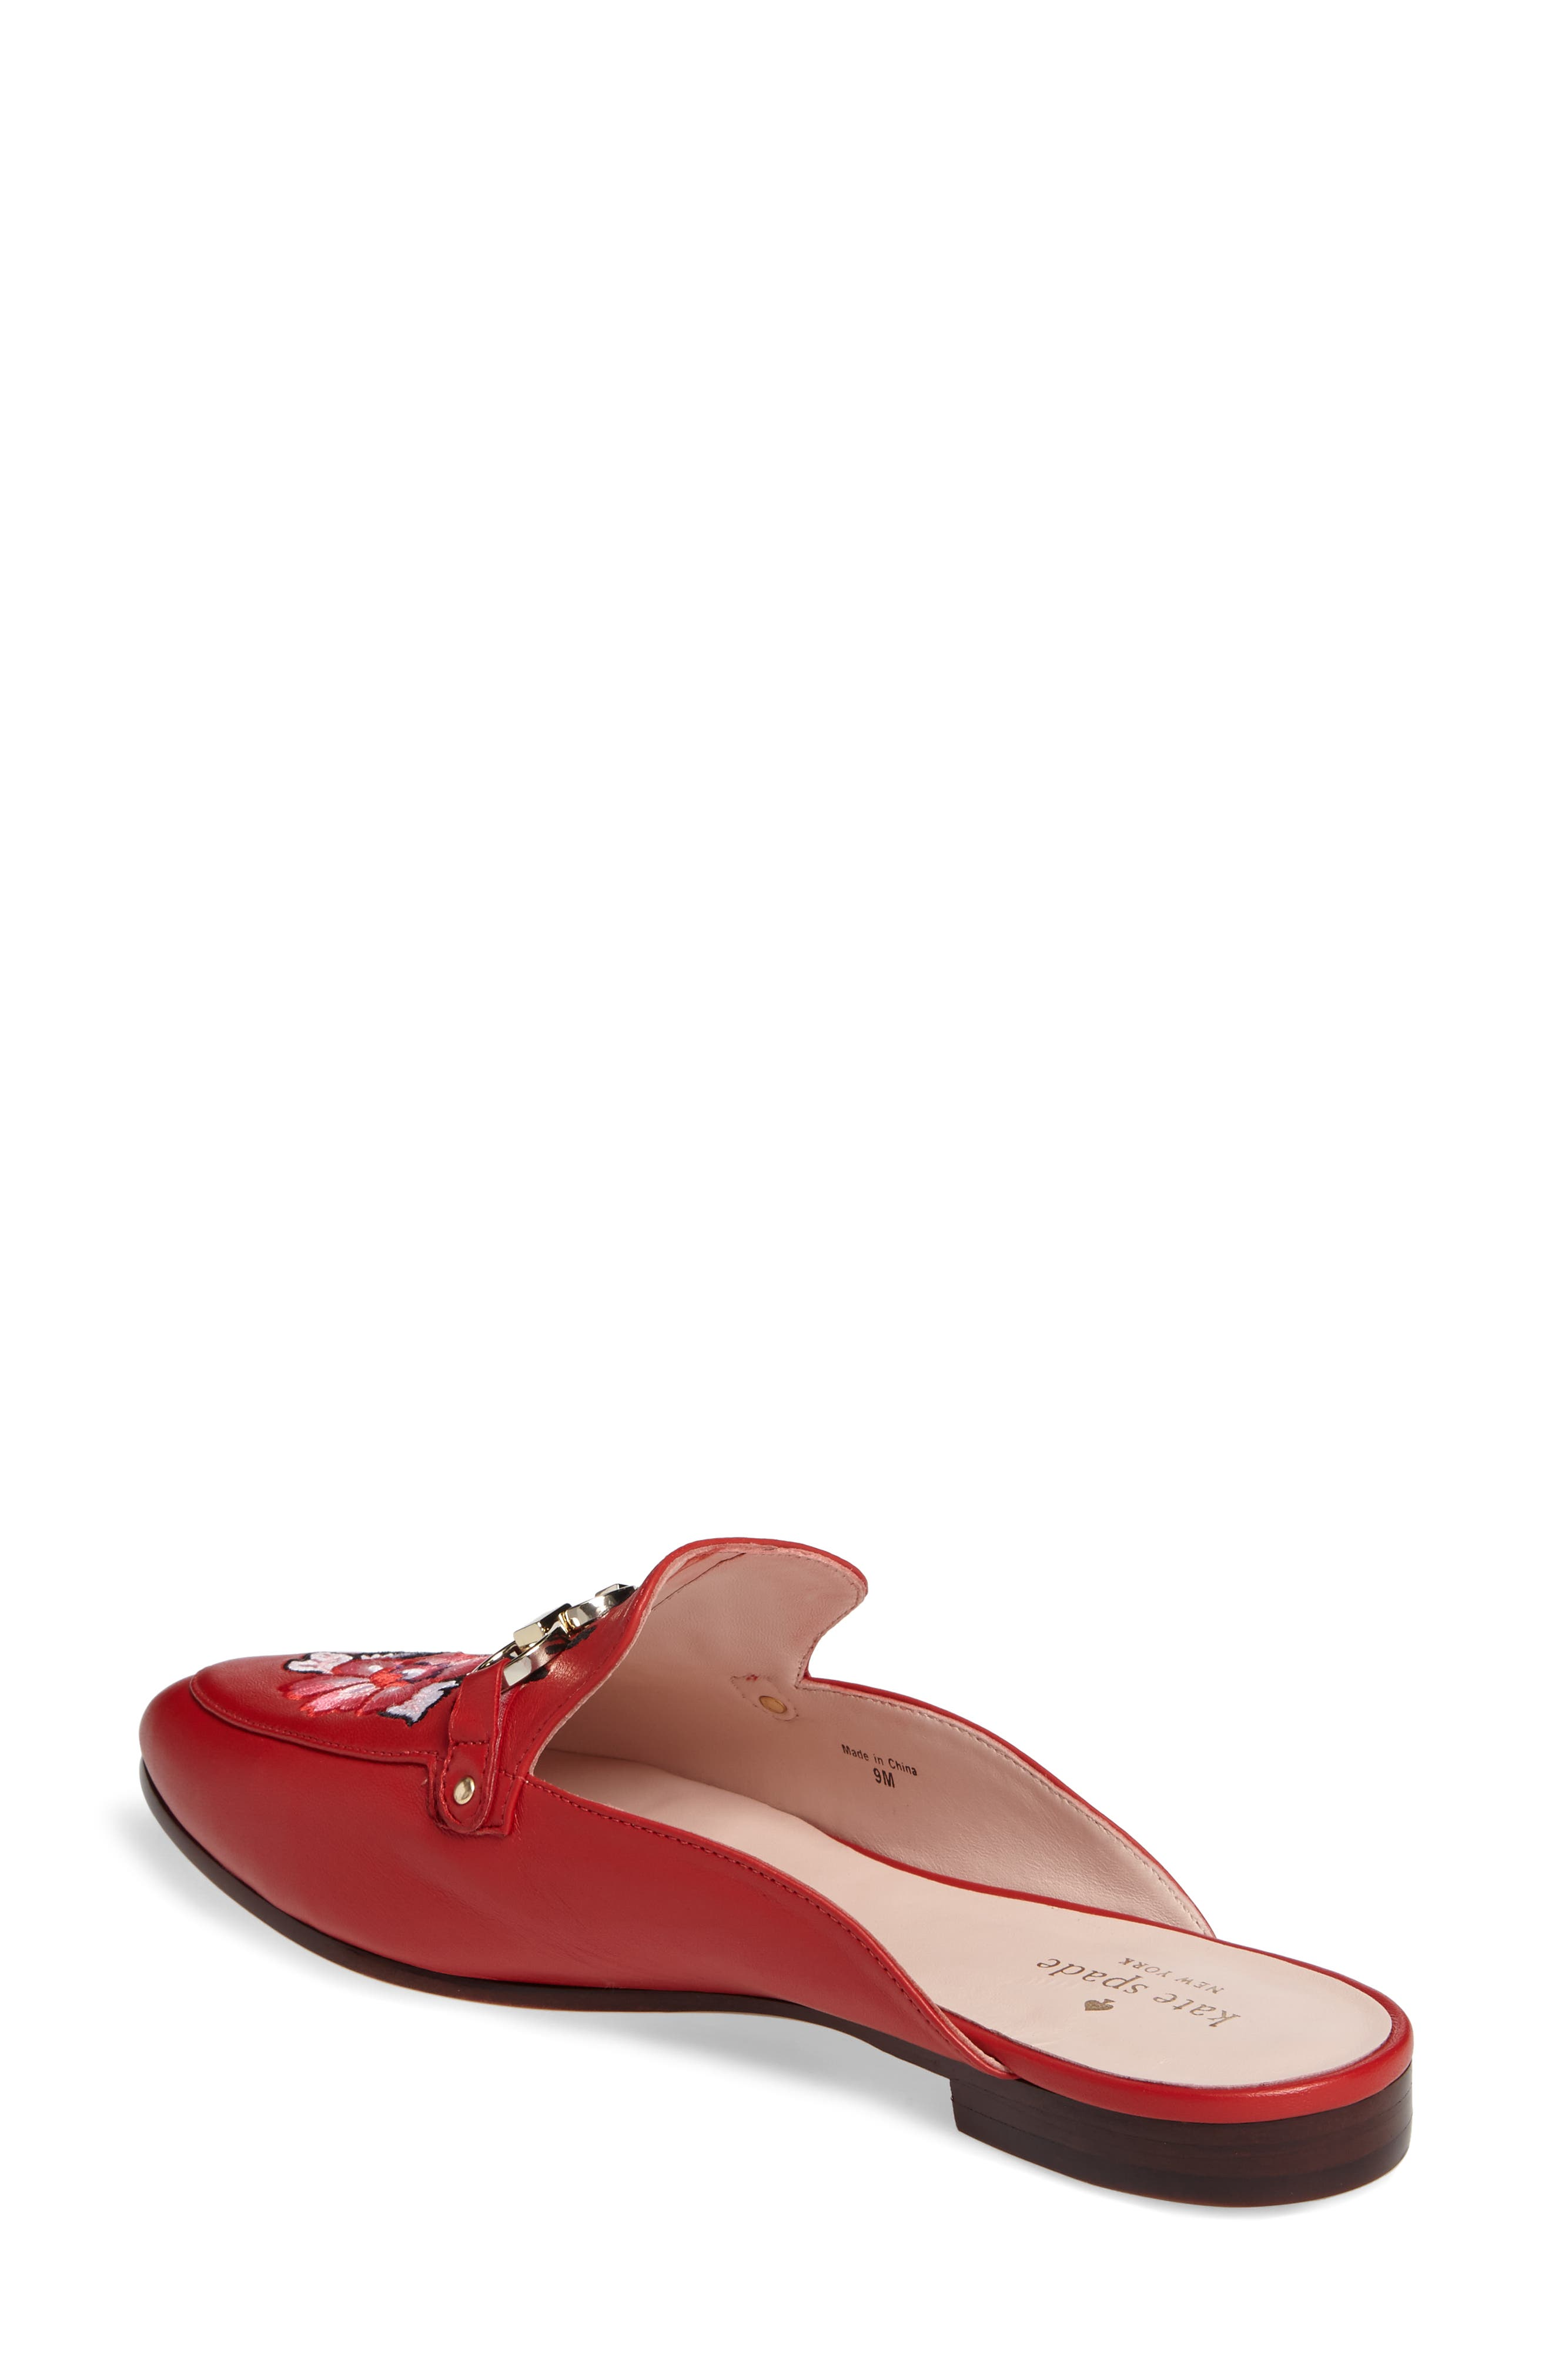 canyon embroidered loafer mule,                             Alternate thumbnail 2, color,                             Maraschino Red Nappa